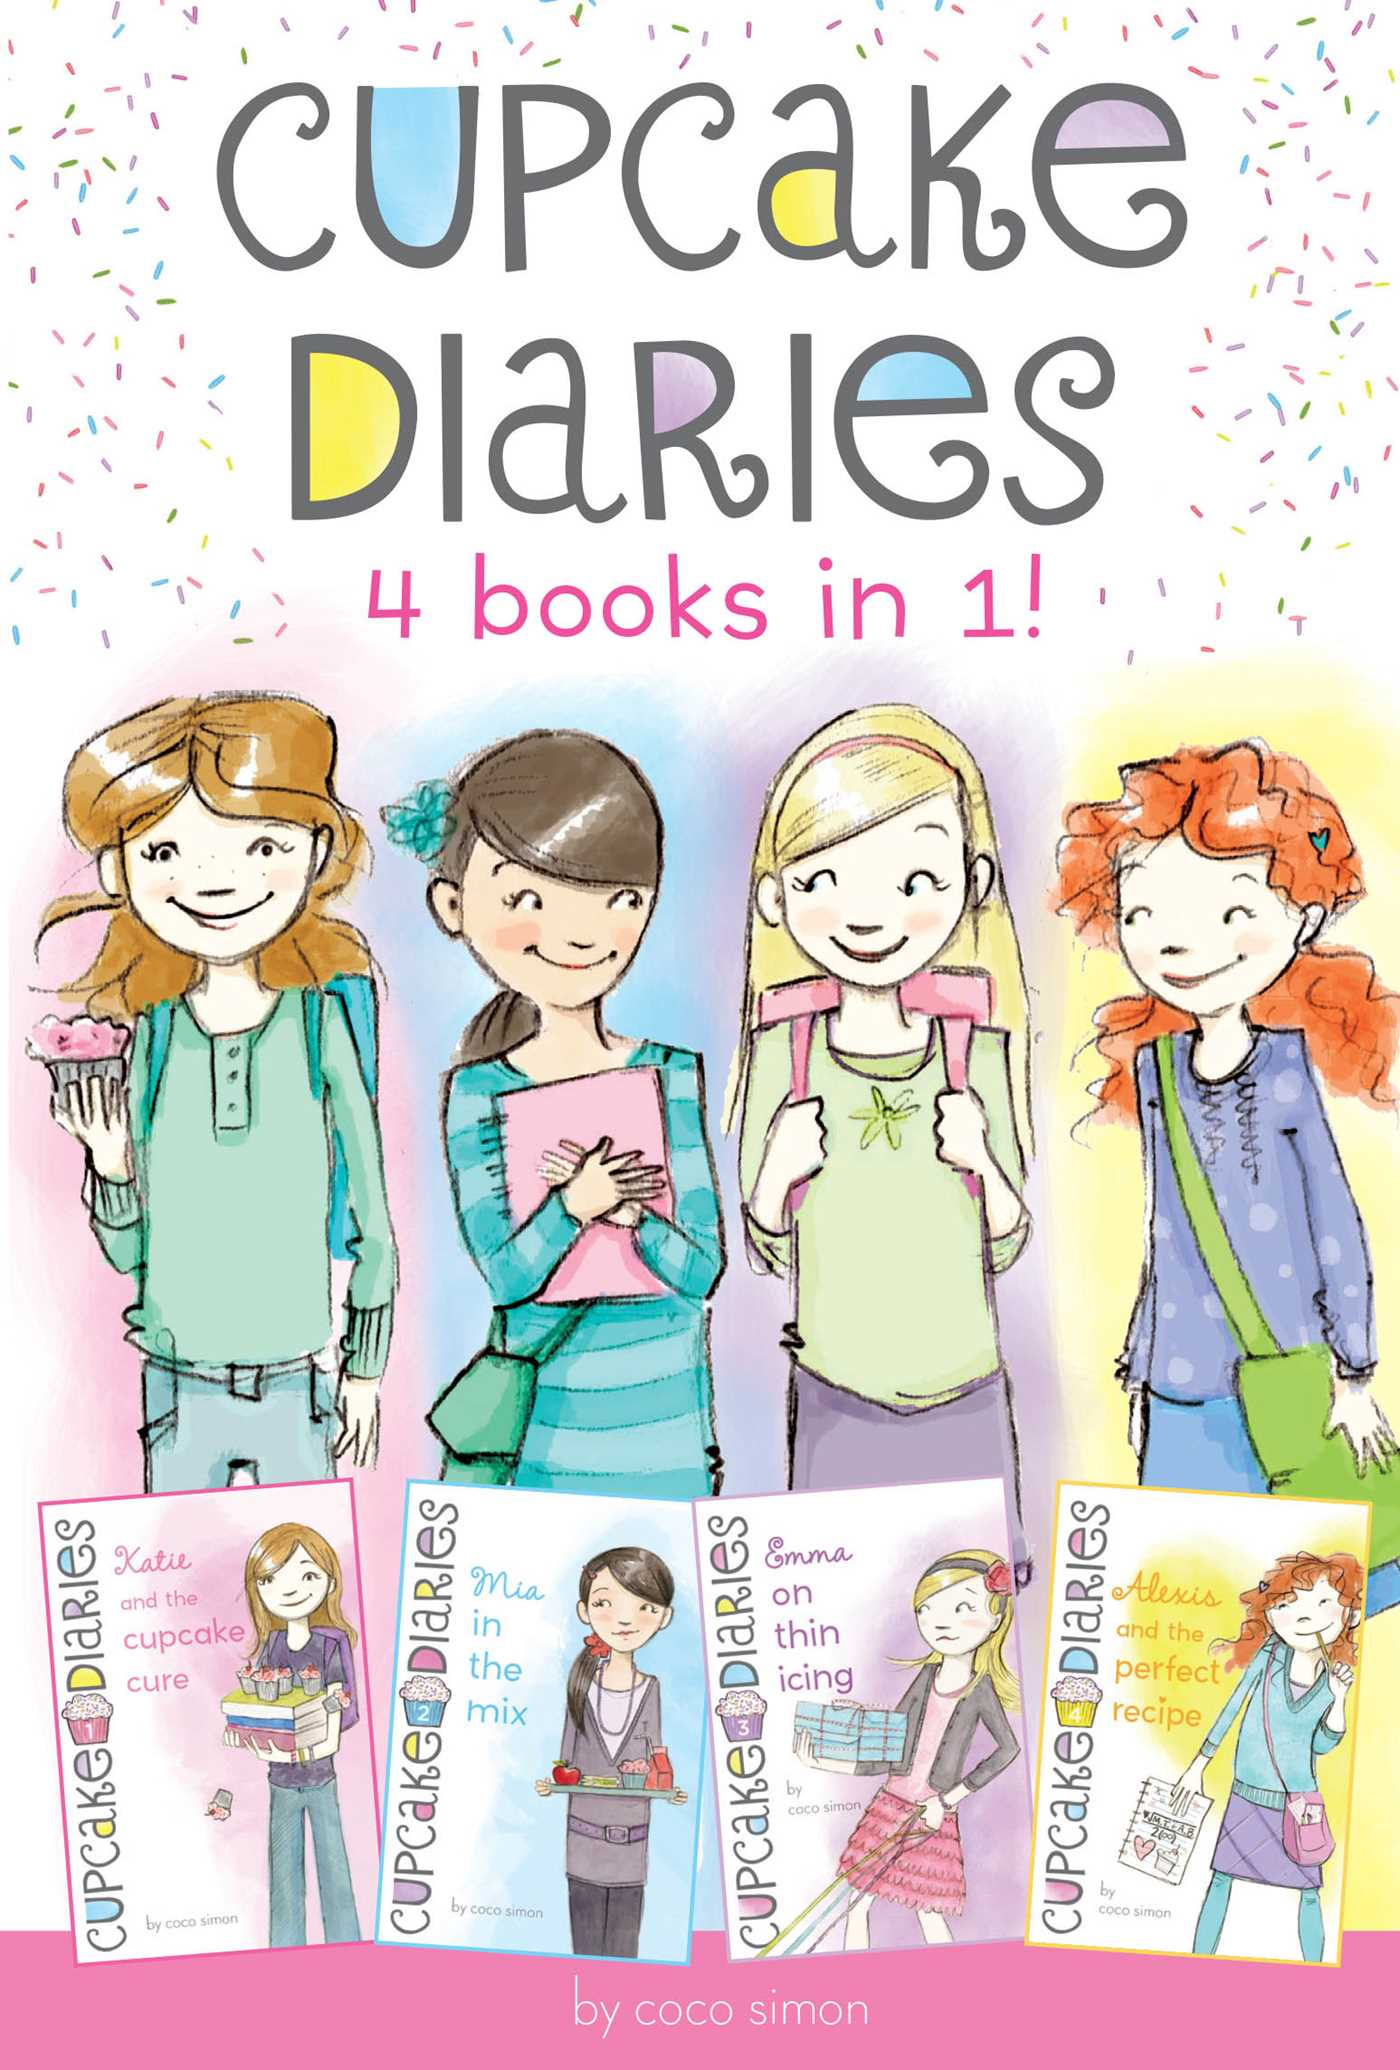 Cupcake diaries 4 in 1 9781481452359 hr